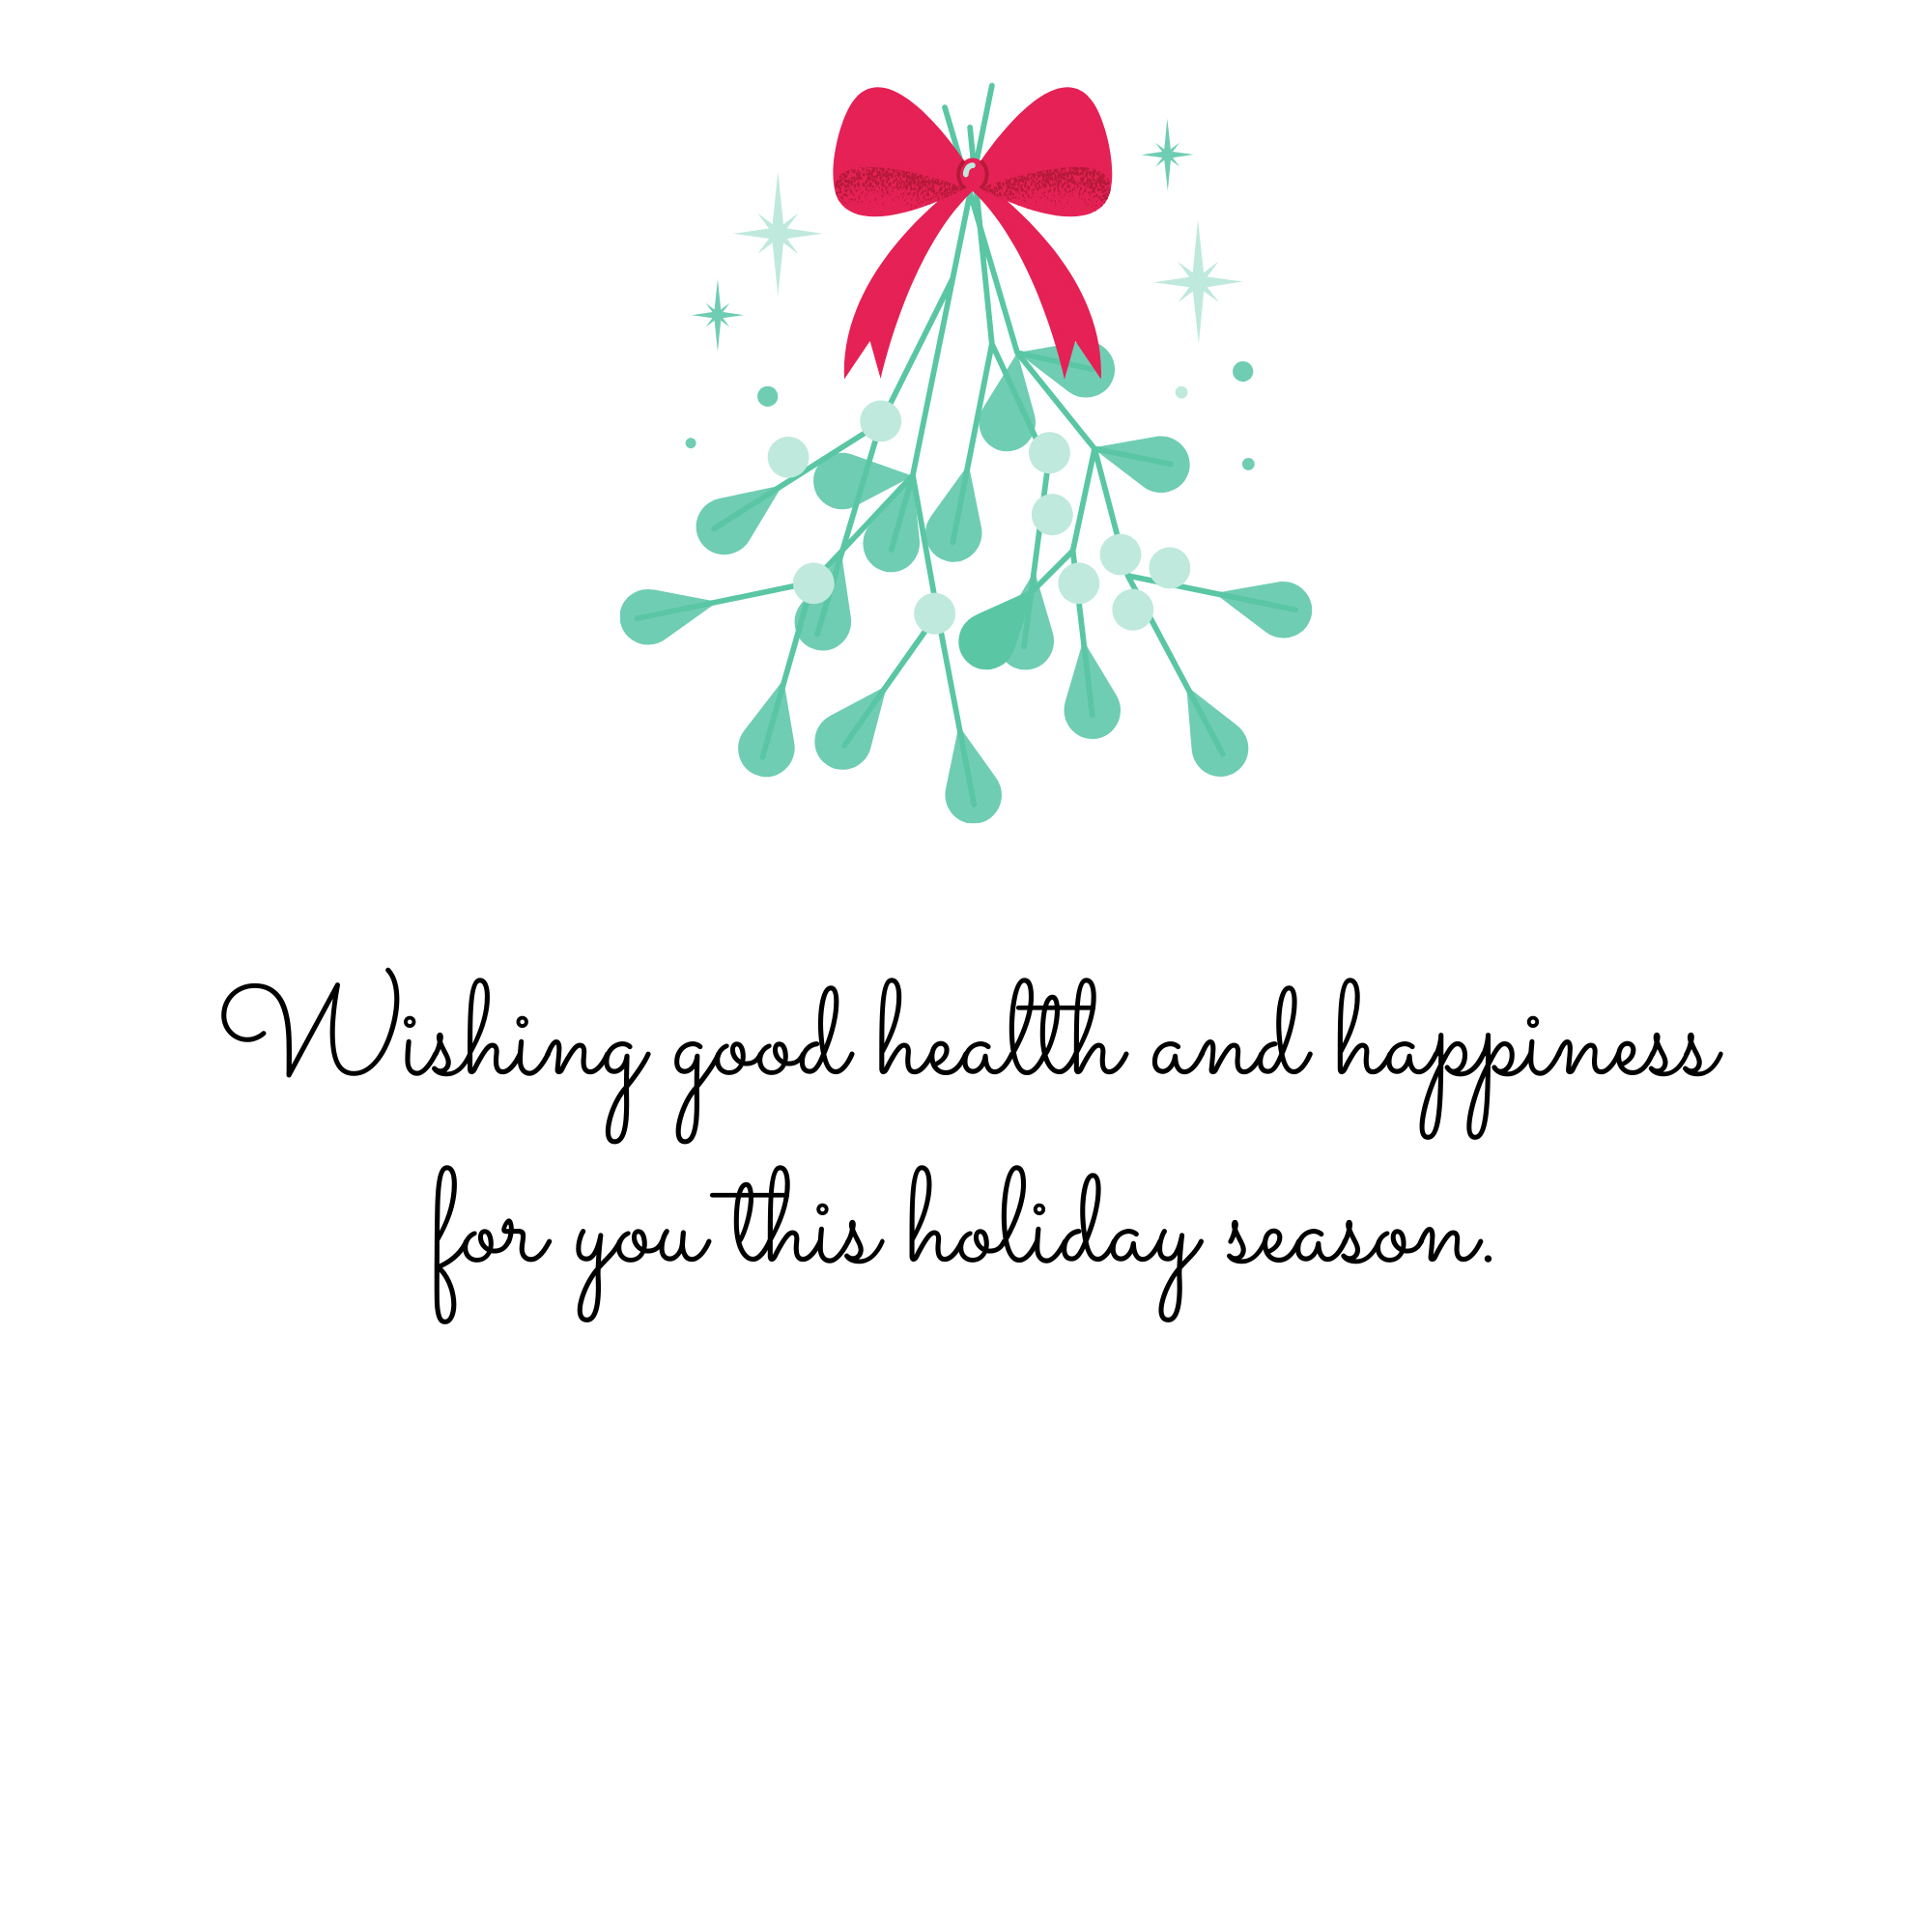 Wishing good health and happiness for you this holiday season